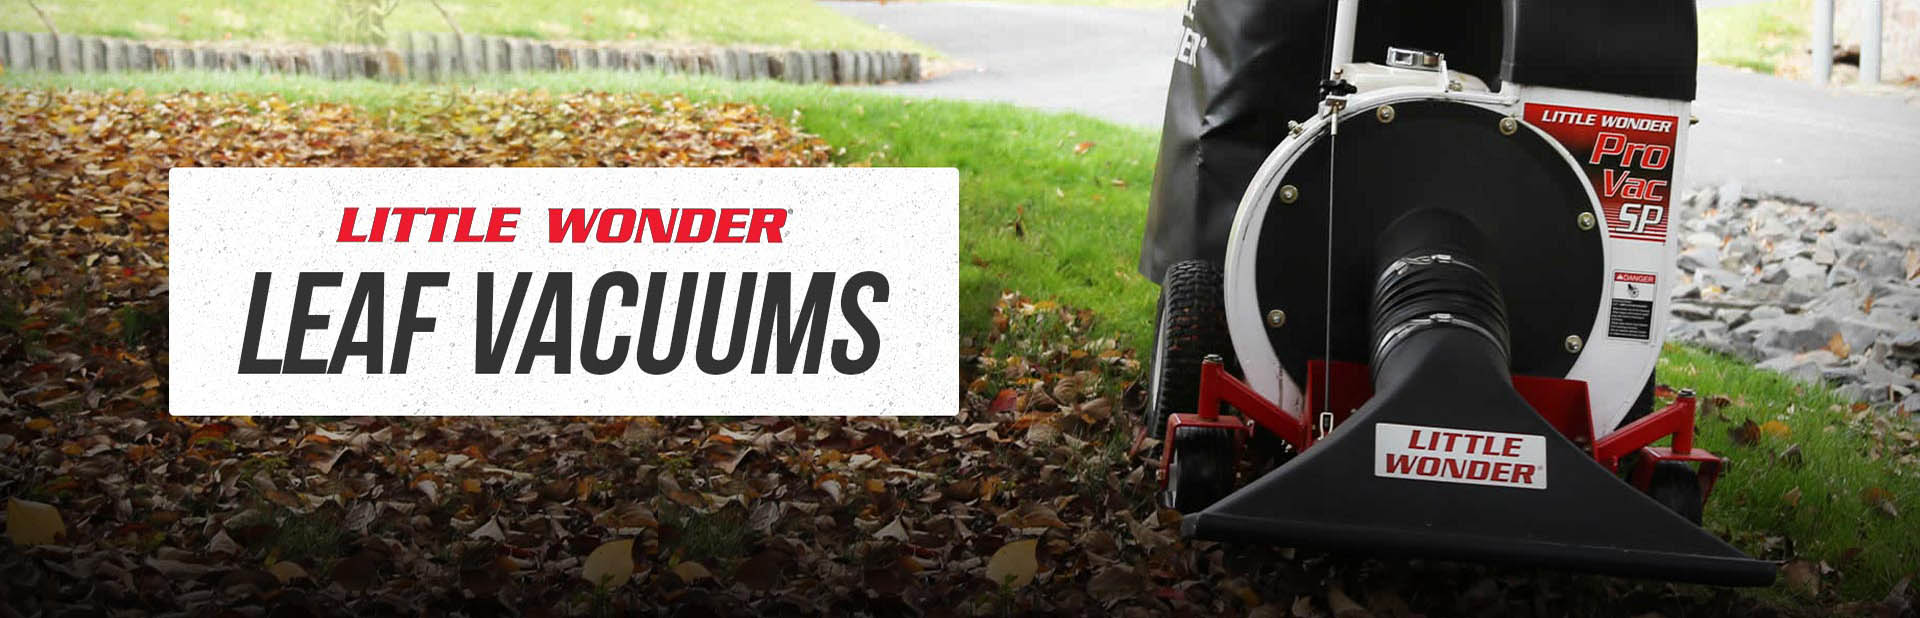 Paul's Parts carries Little Wonder leaf vacuums!